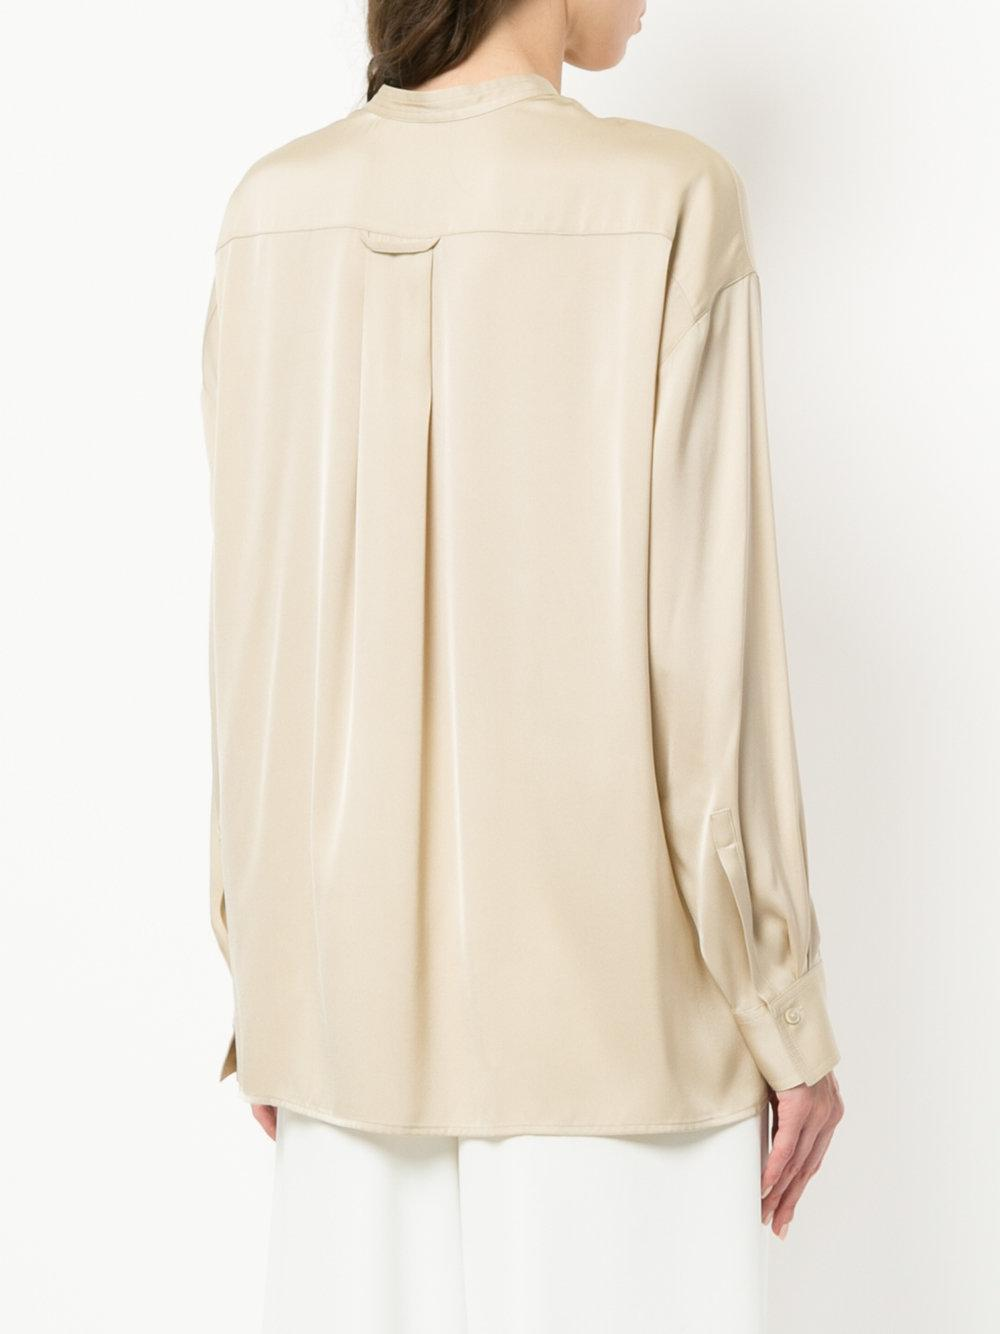 Cheap Sale The Cheapest Sale With Credit Card concealed front blouse - Nude & Neutrals Vince Buy Cheap Newest Cheap Sale Professional Outlet Limited Edition nF4b643Lx0